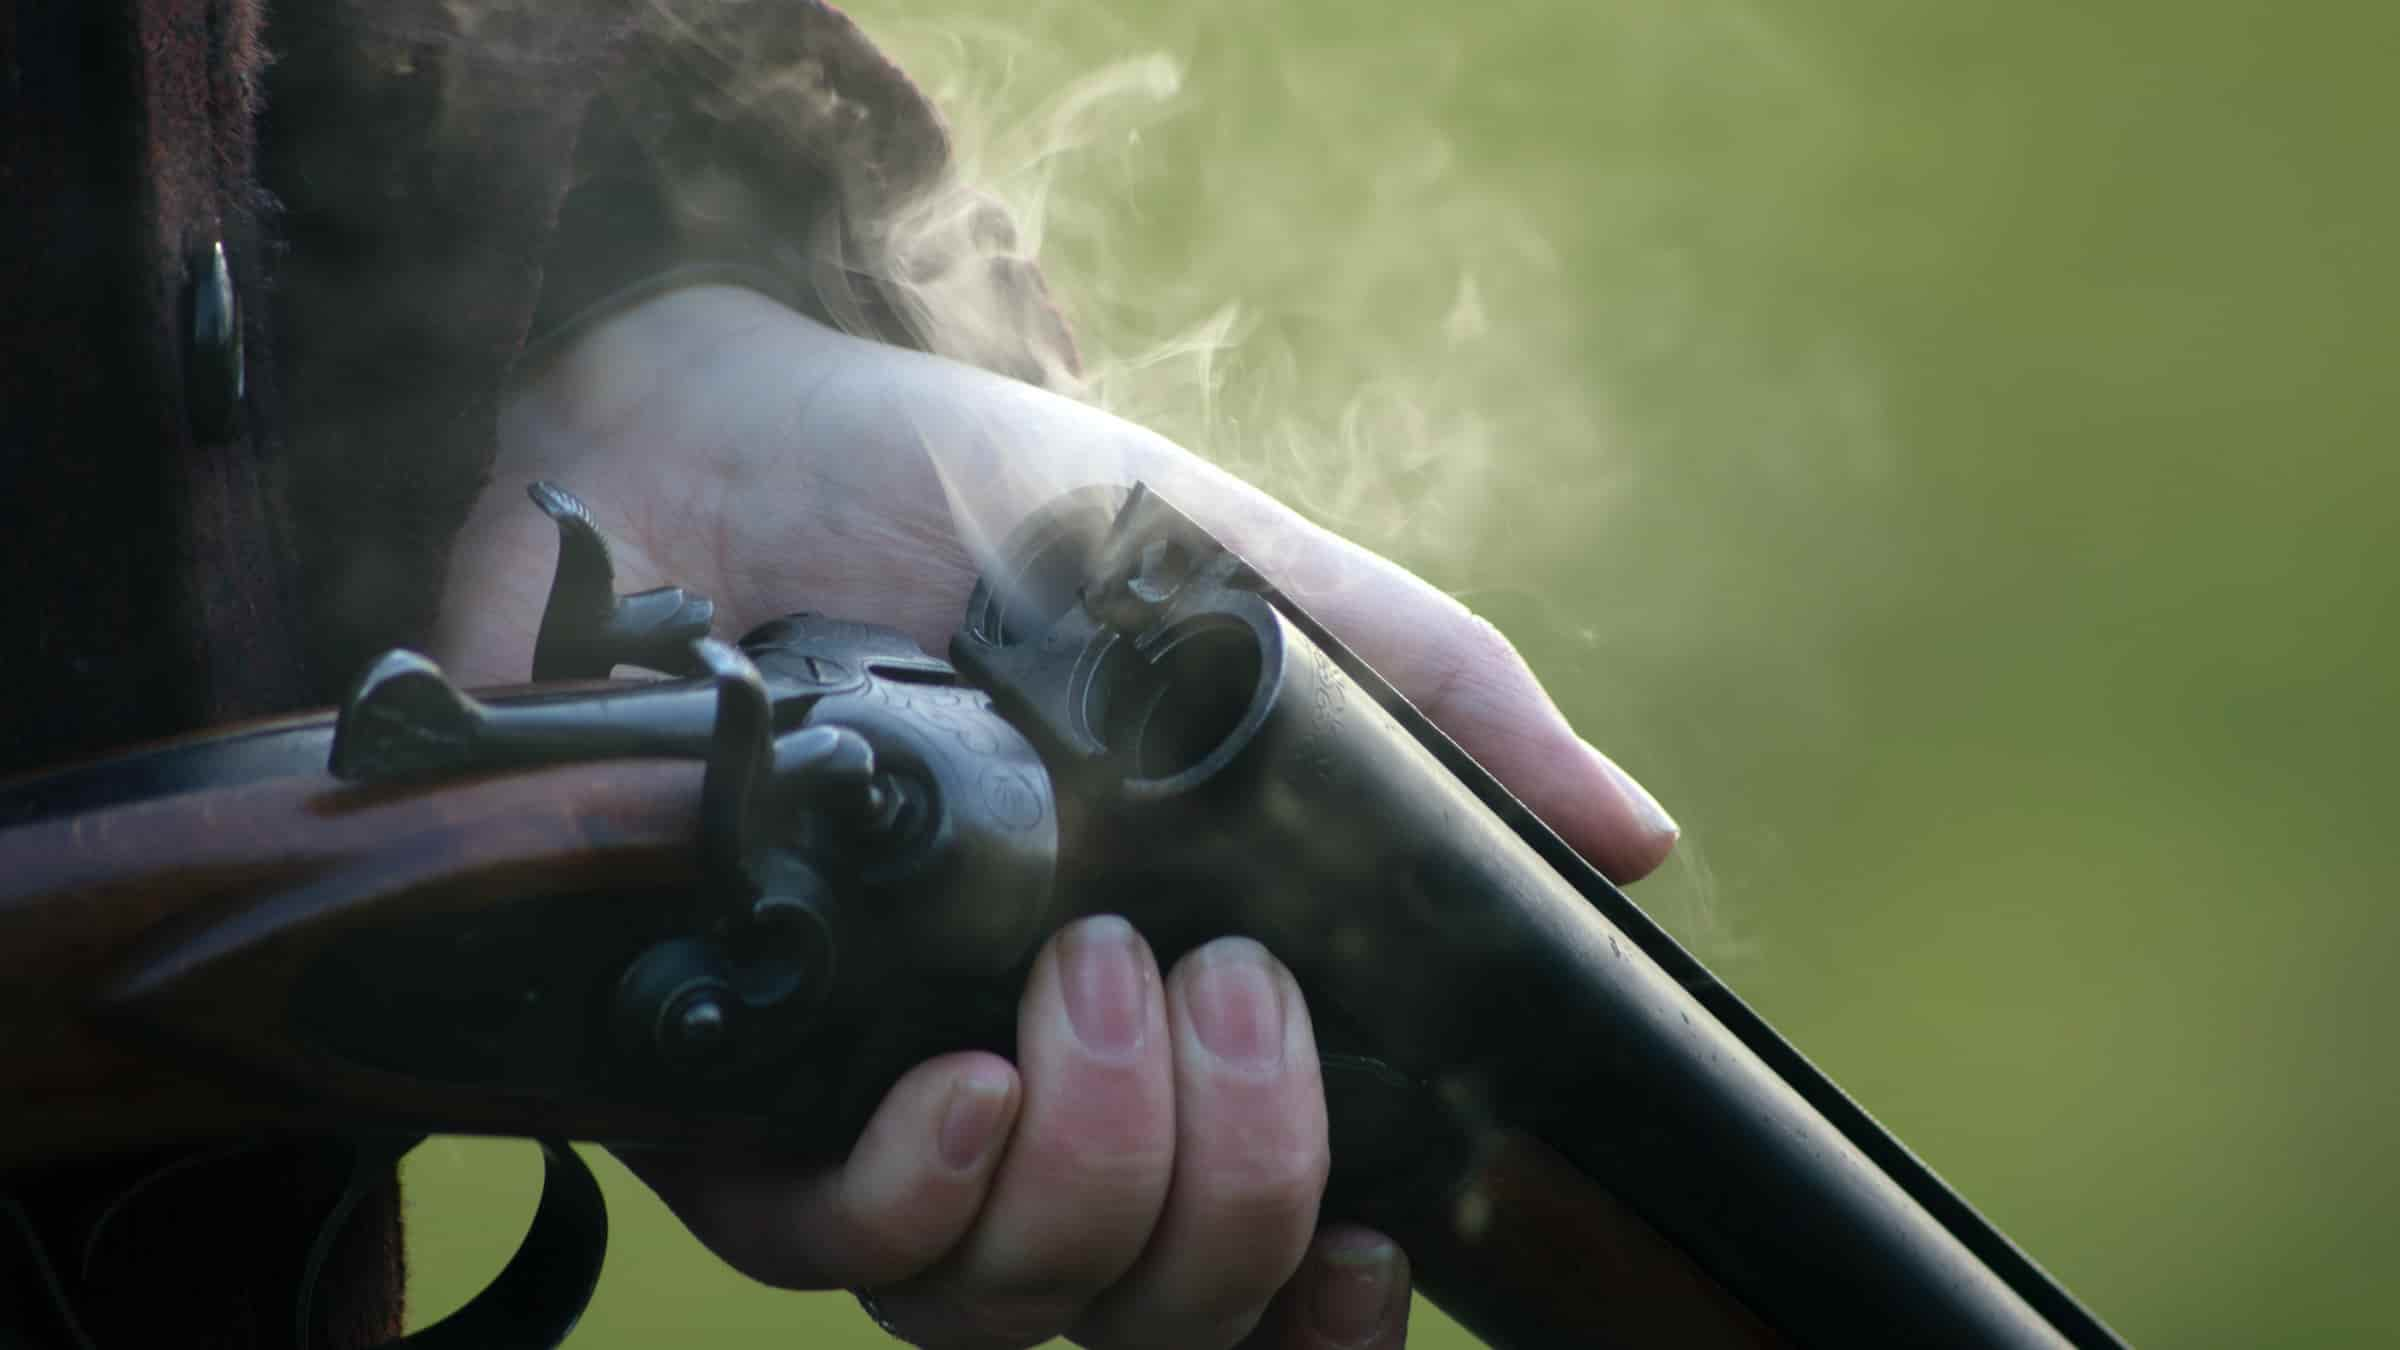 Clay pigeon shooting safety tips; smoke coming out from one part of rifle reflecting the intensity of sound while shooting.